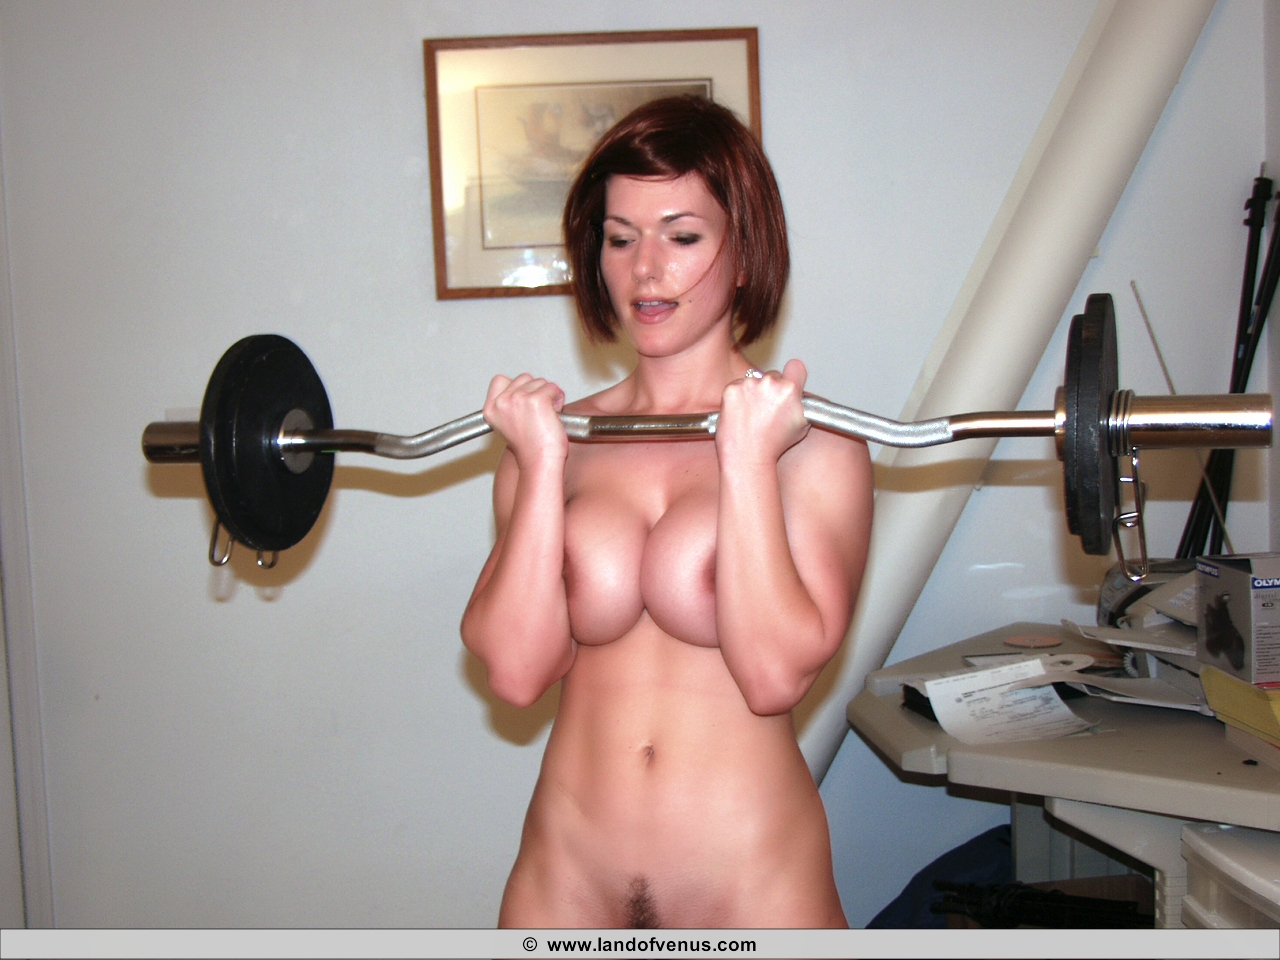 Denise Milani Fully Nude Lifting Weights